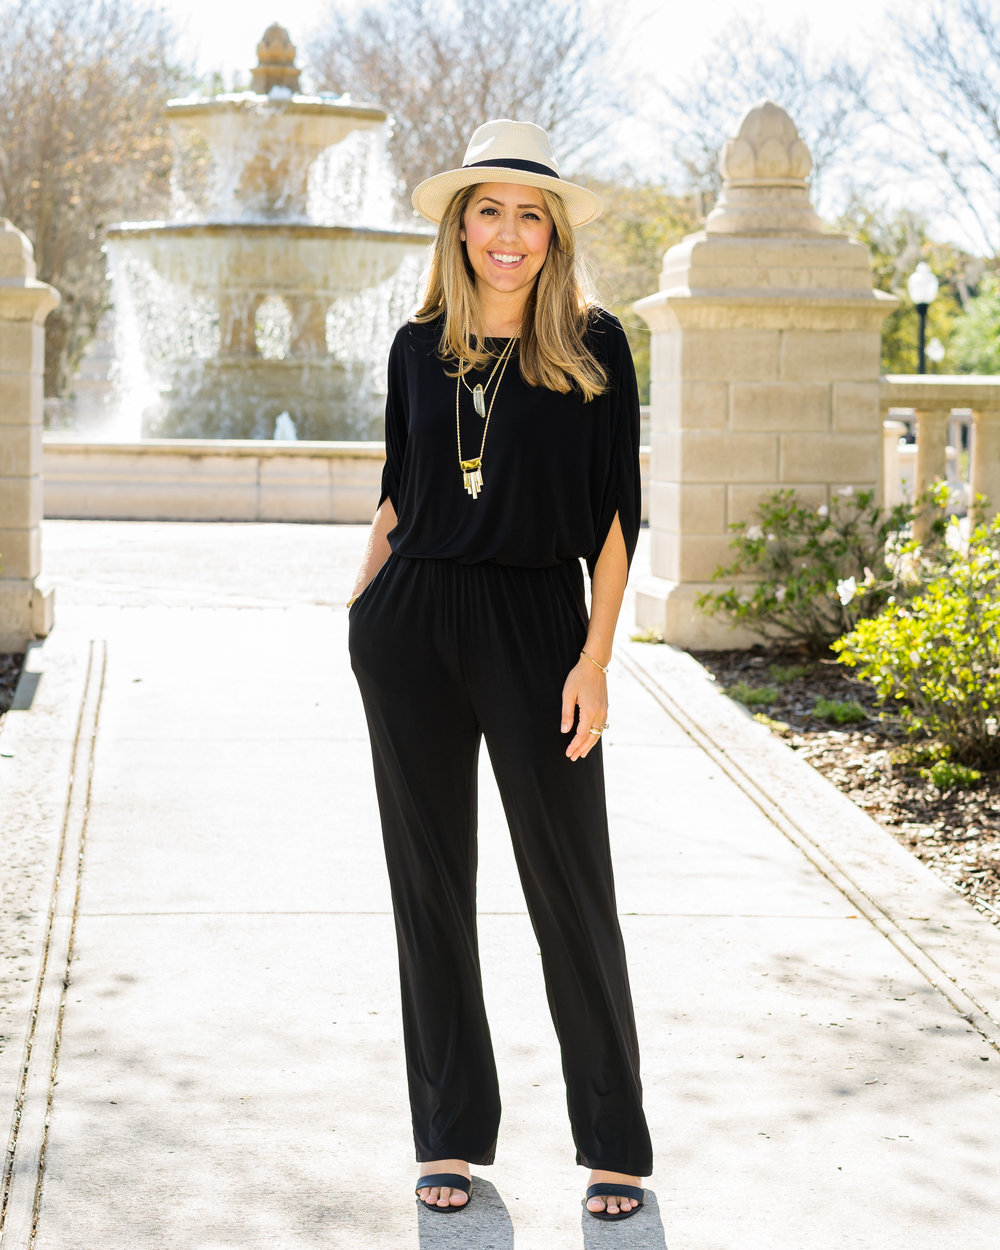 Panama hat, black jumpsuit